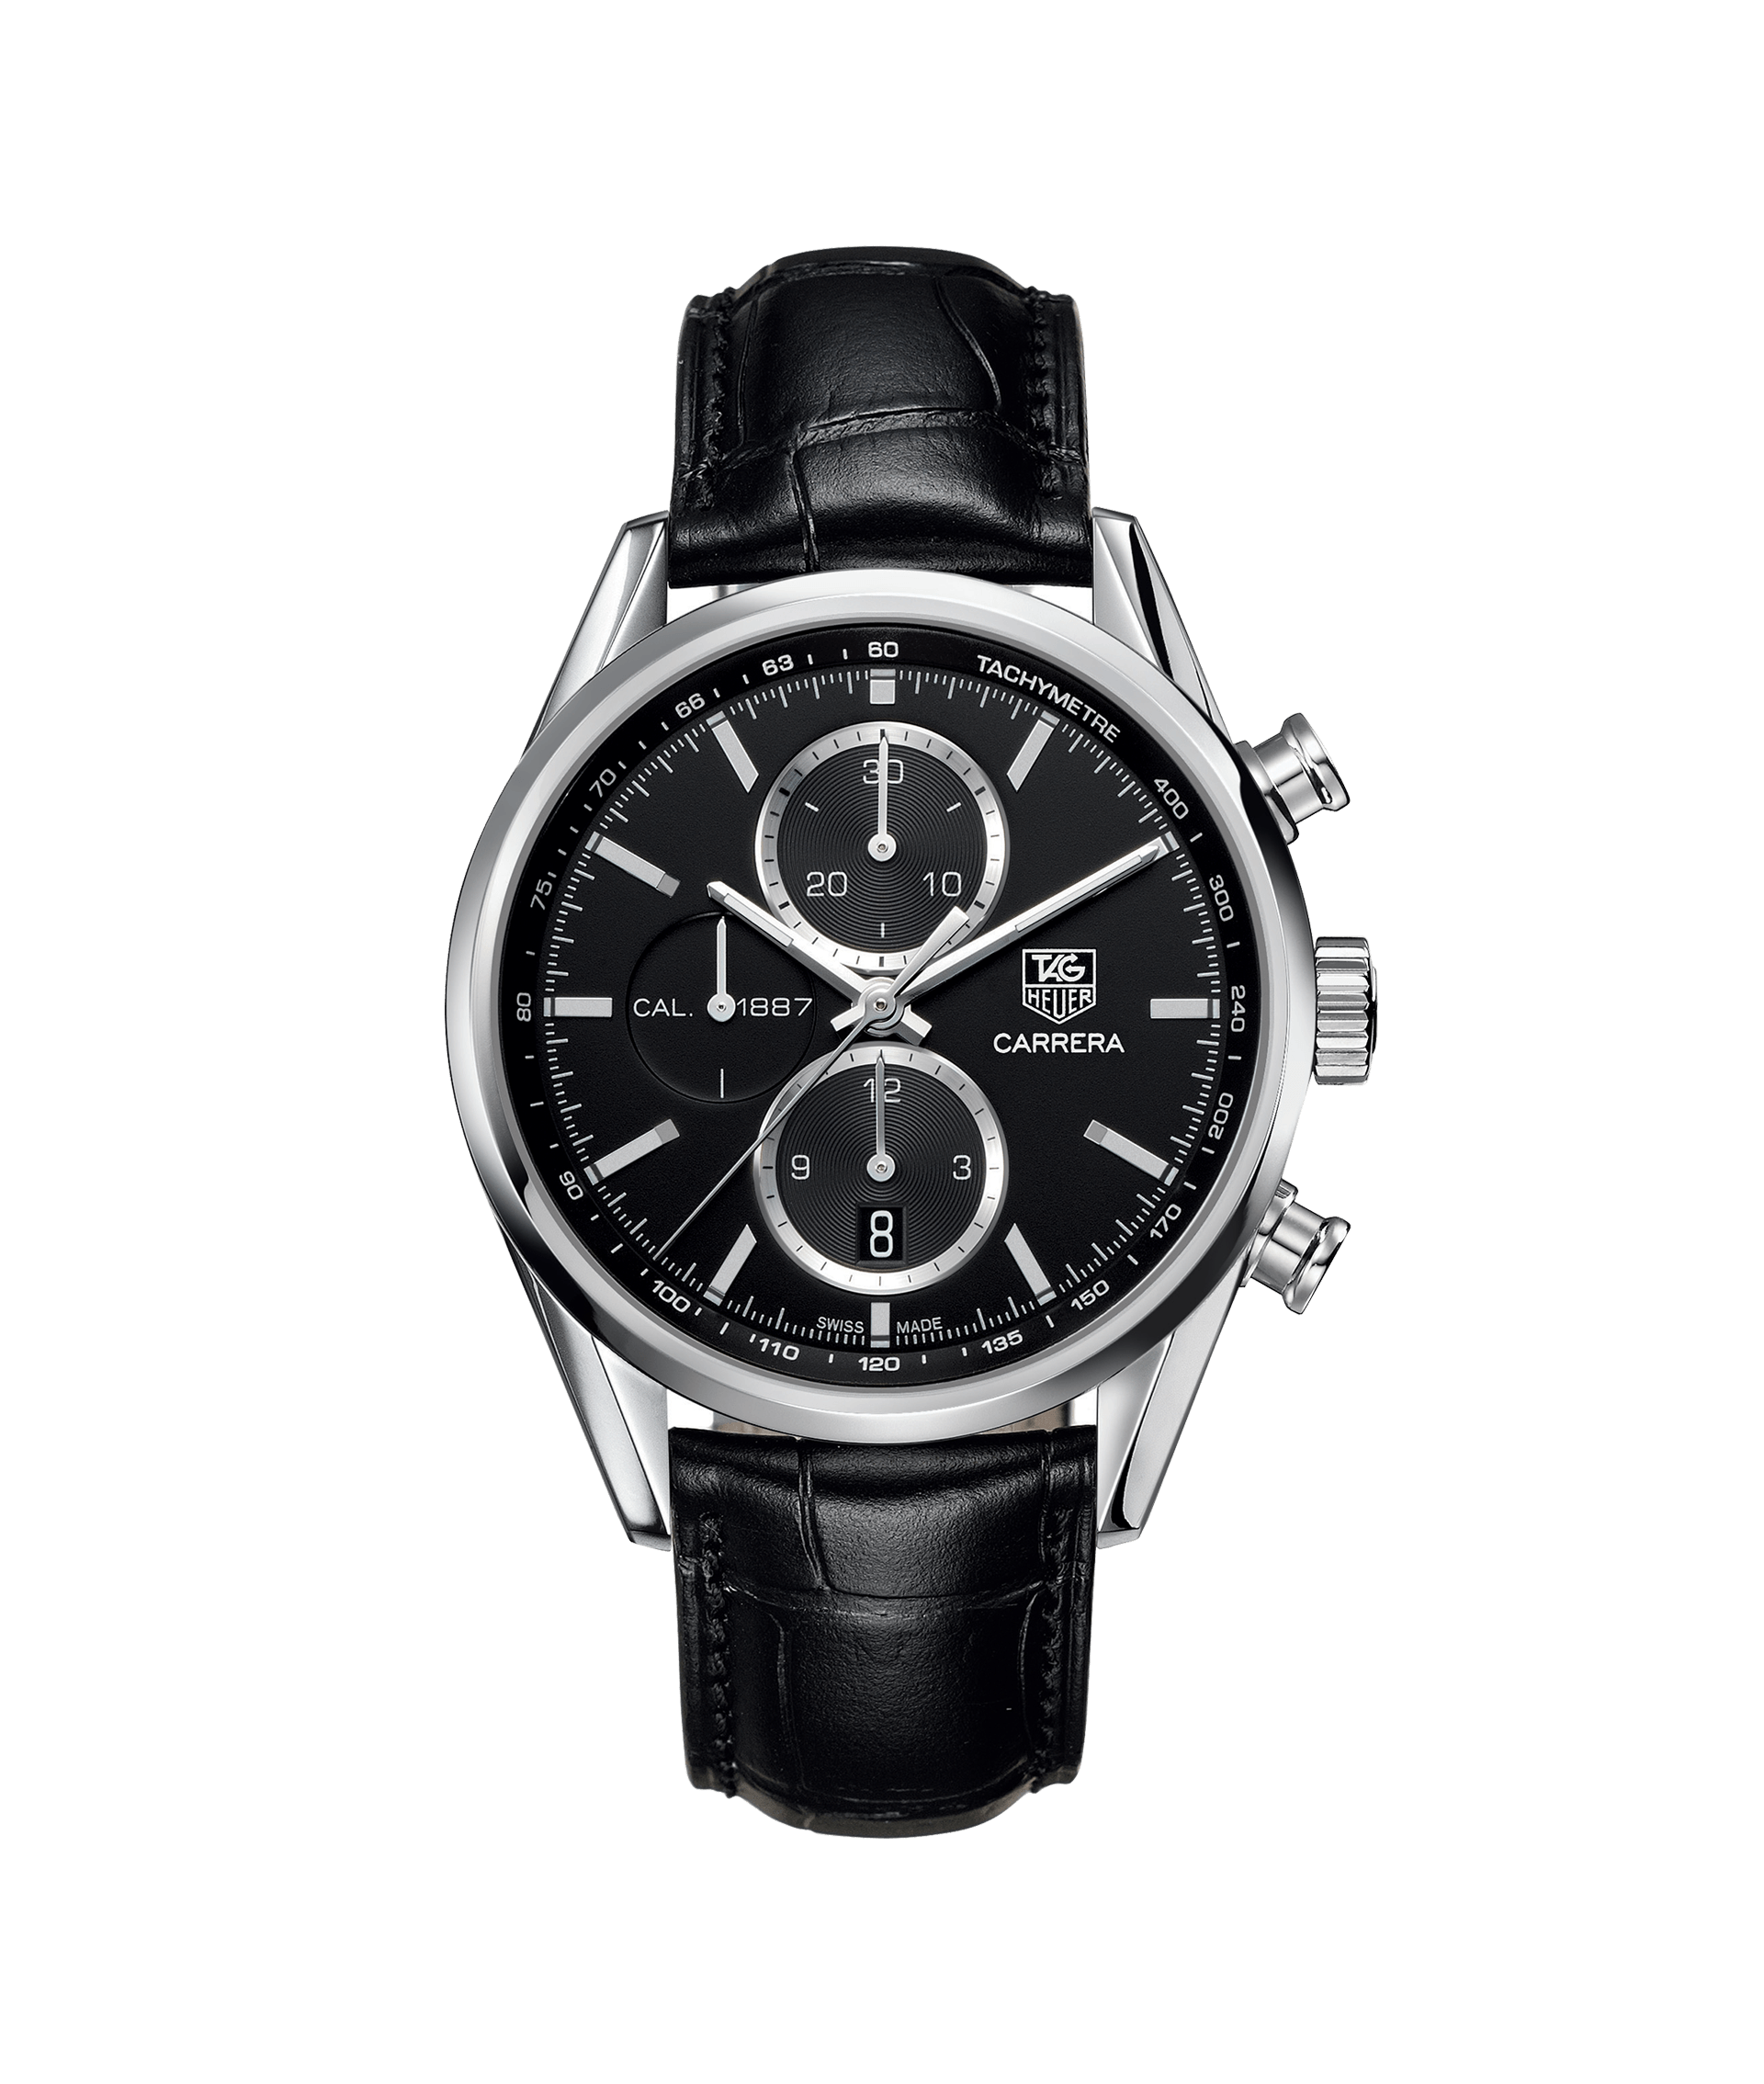 c740b3f9be614 This motor-inspired watch has a stainless steel case on a stylish black  alligator leather strap. The black dial features luminescent indexes, a  Grande Date ...